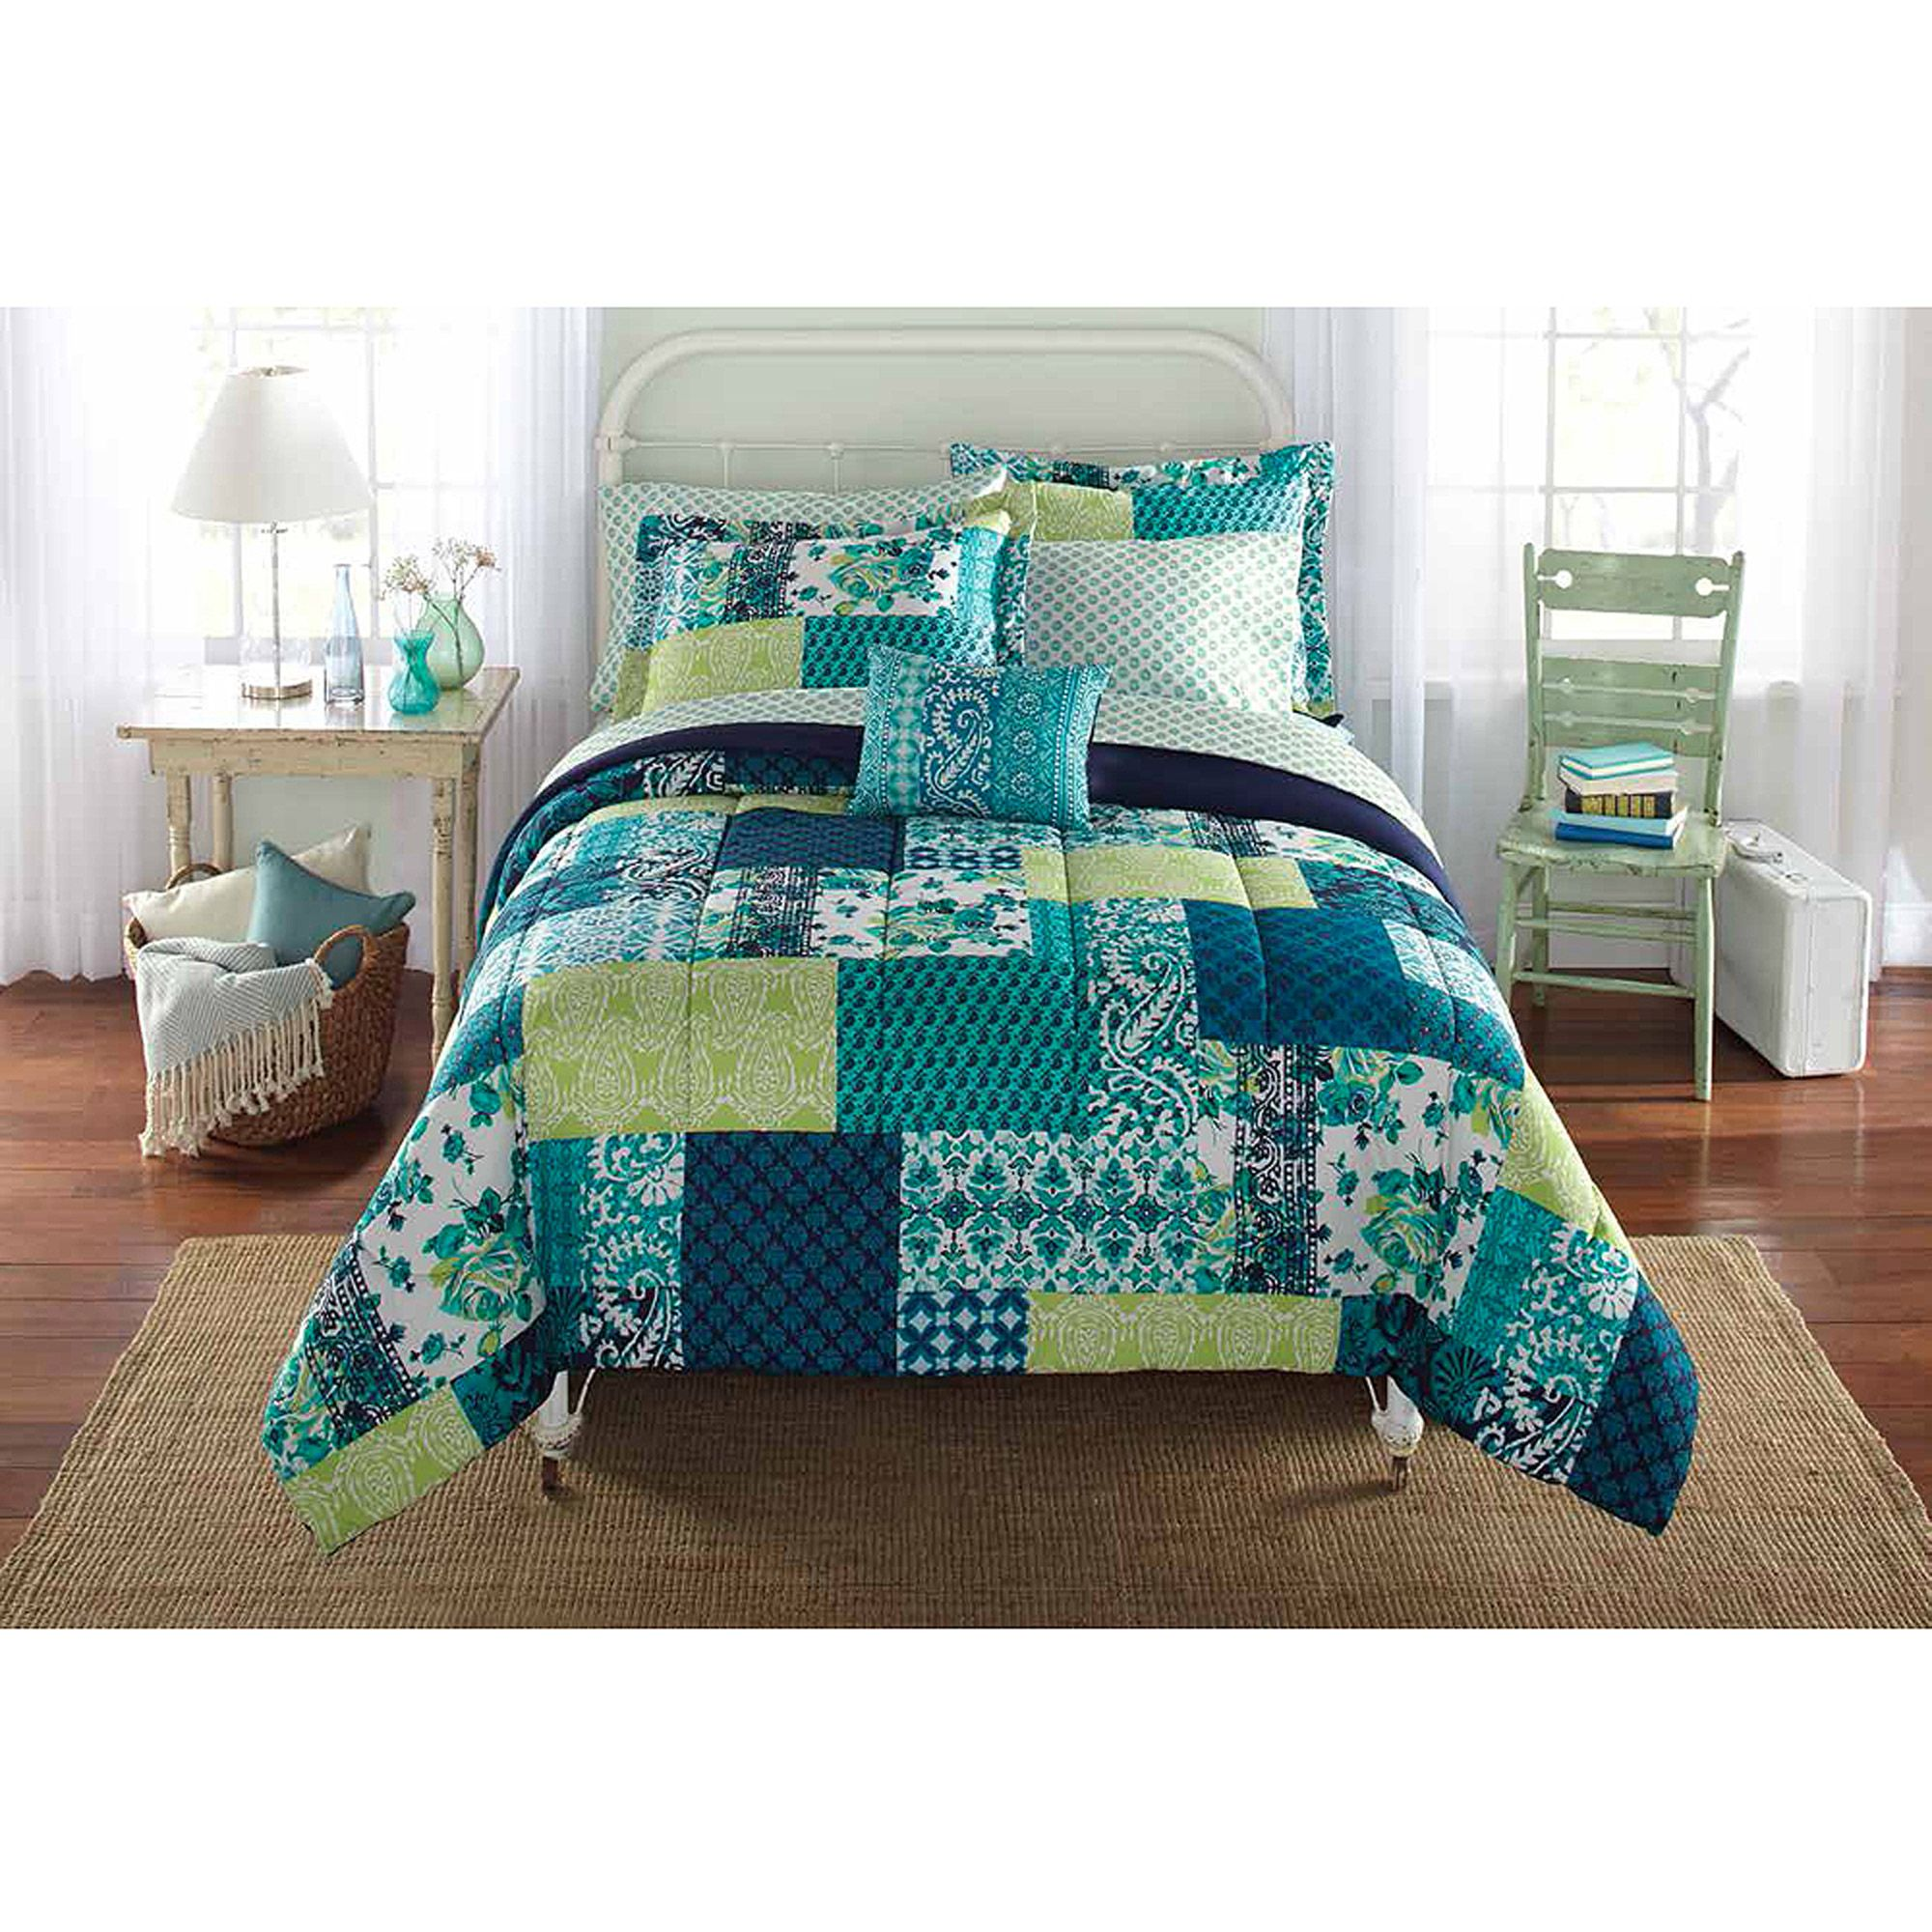 set pleated soft bed photo bedding luxury comforter teal oxford double pinch needle